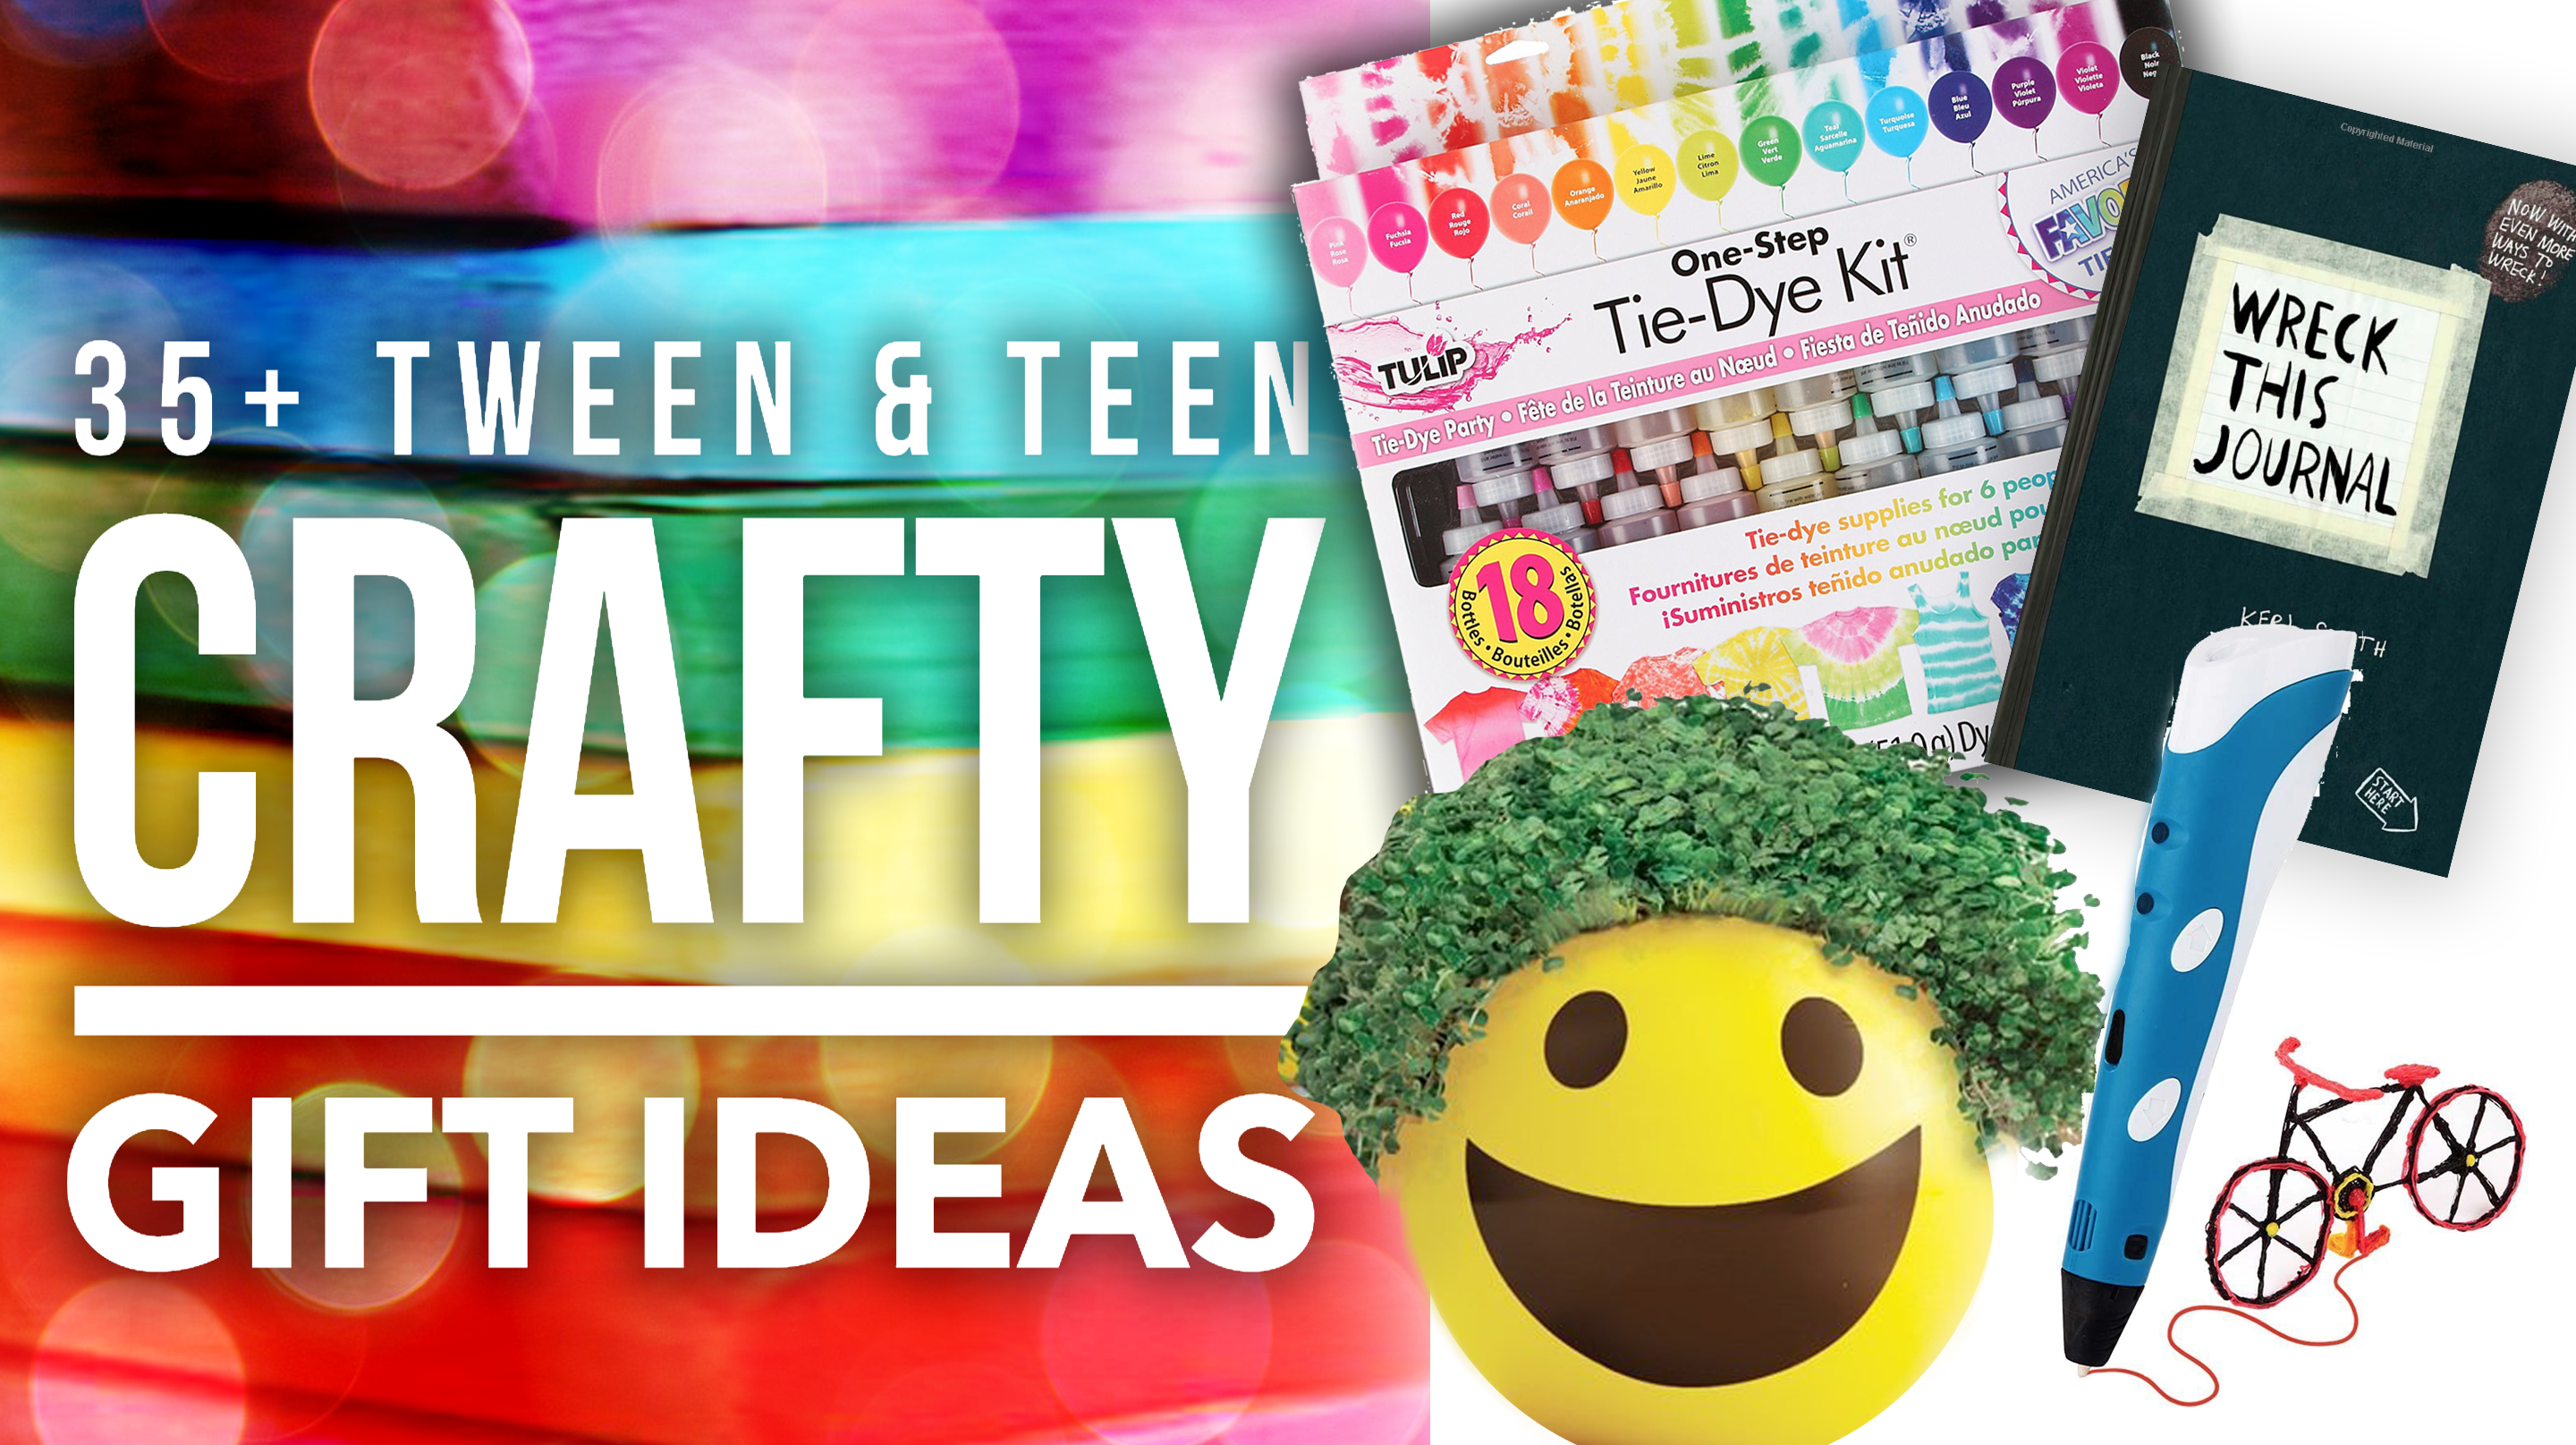 crafts-crafty-teen-gift-ideas-tween